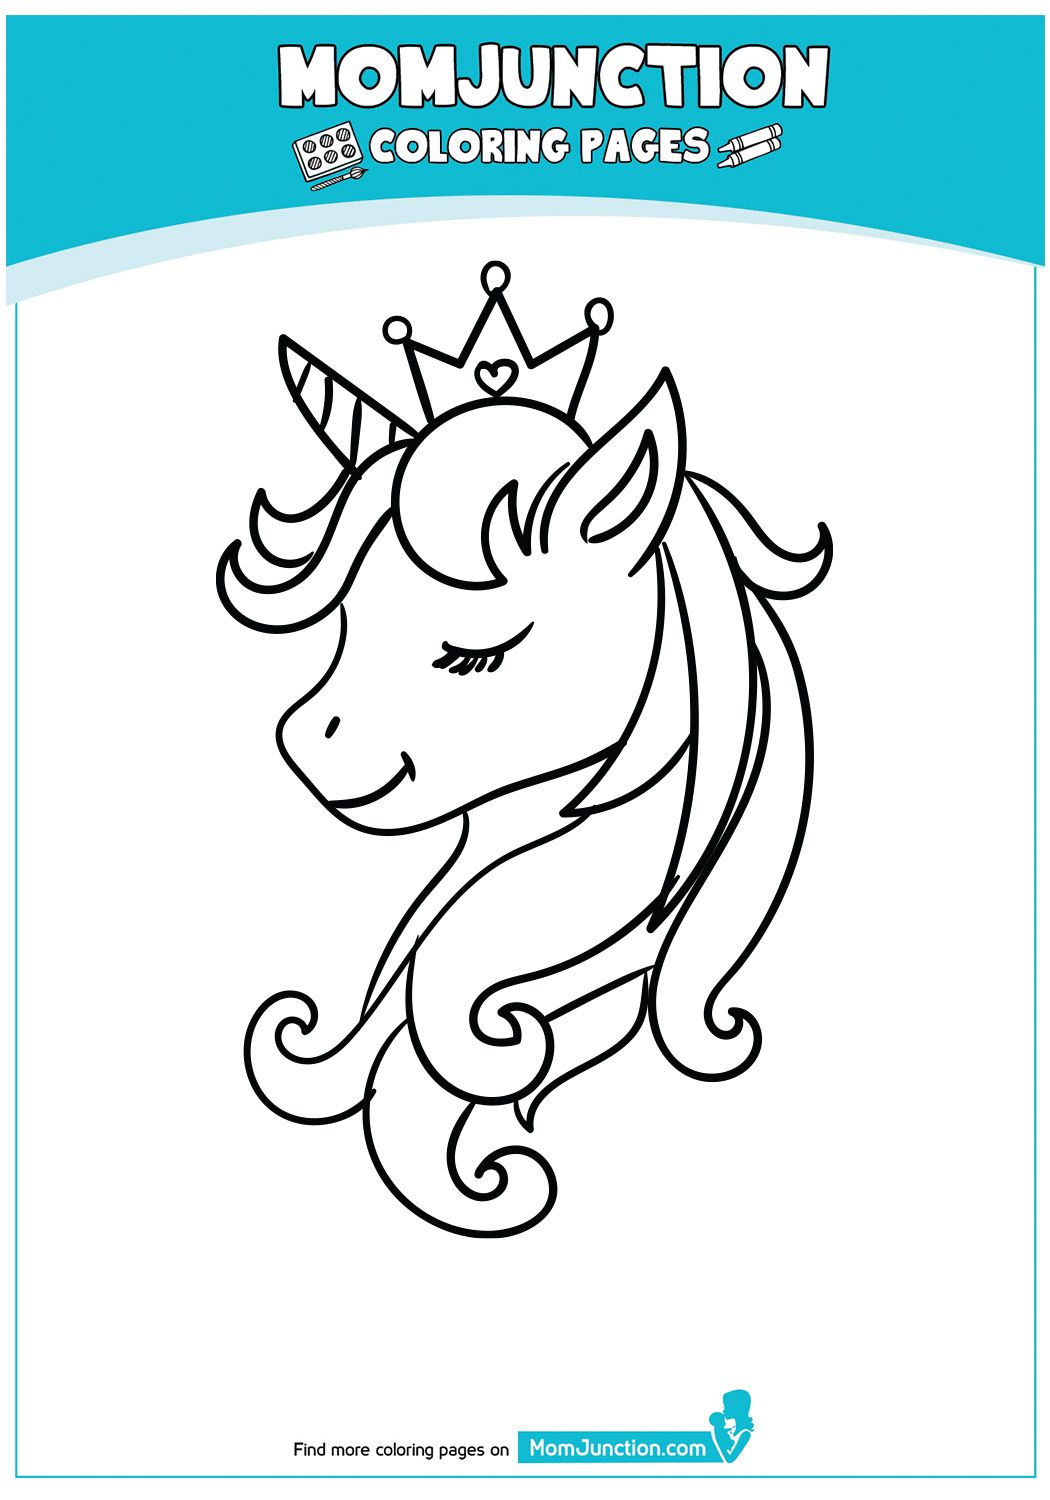 Momjunction Unicorn Coloring Page Designs Trend